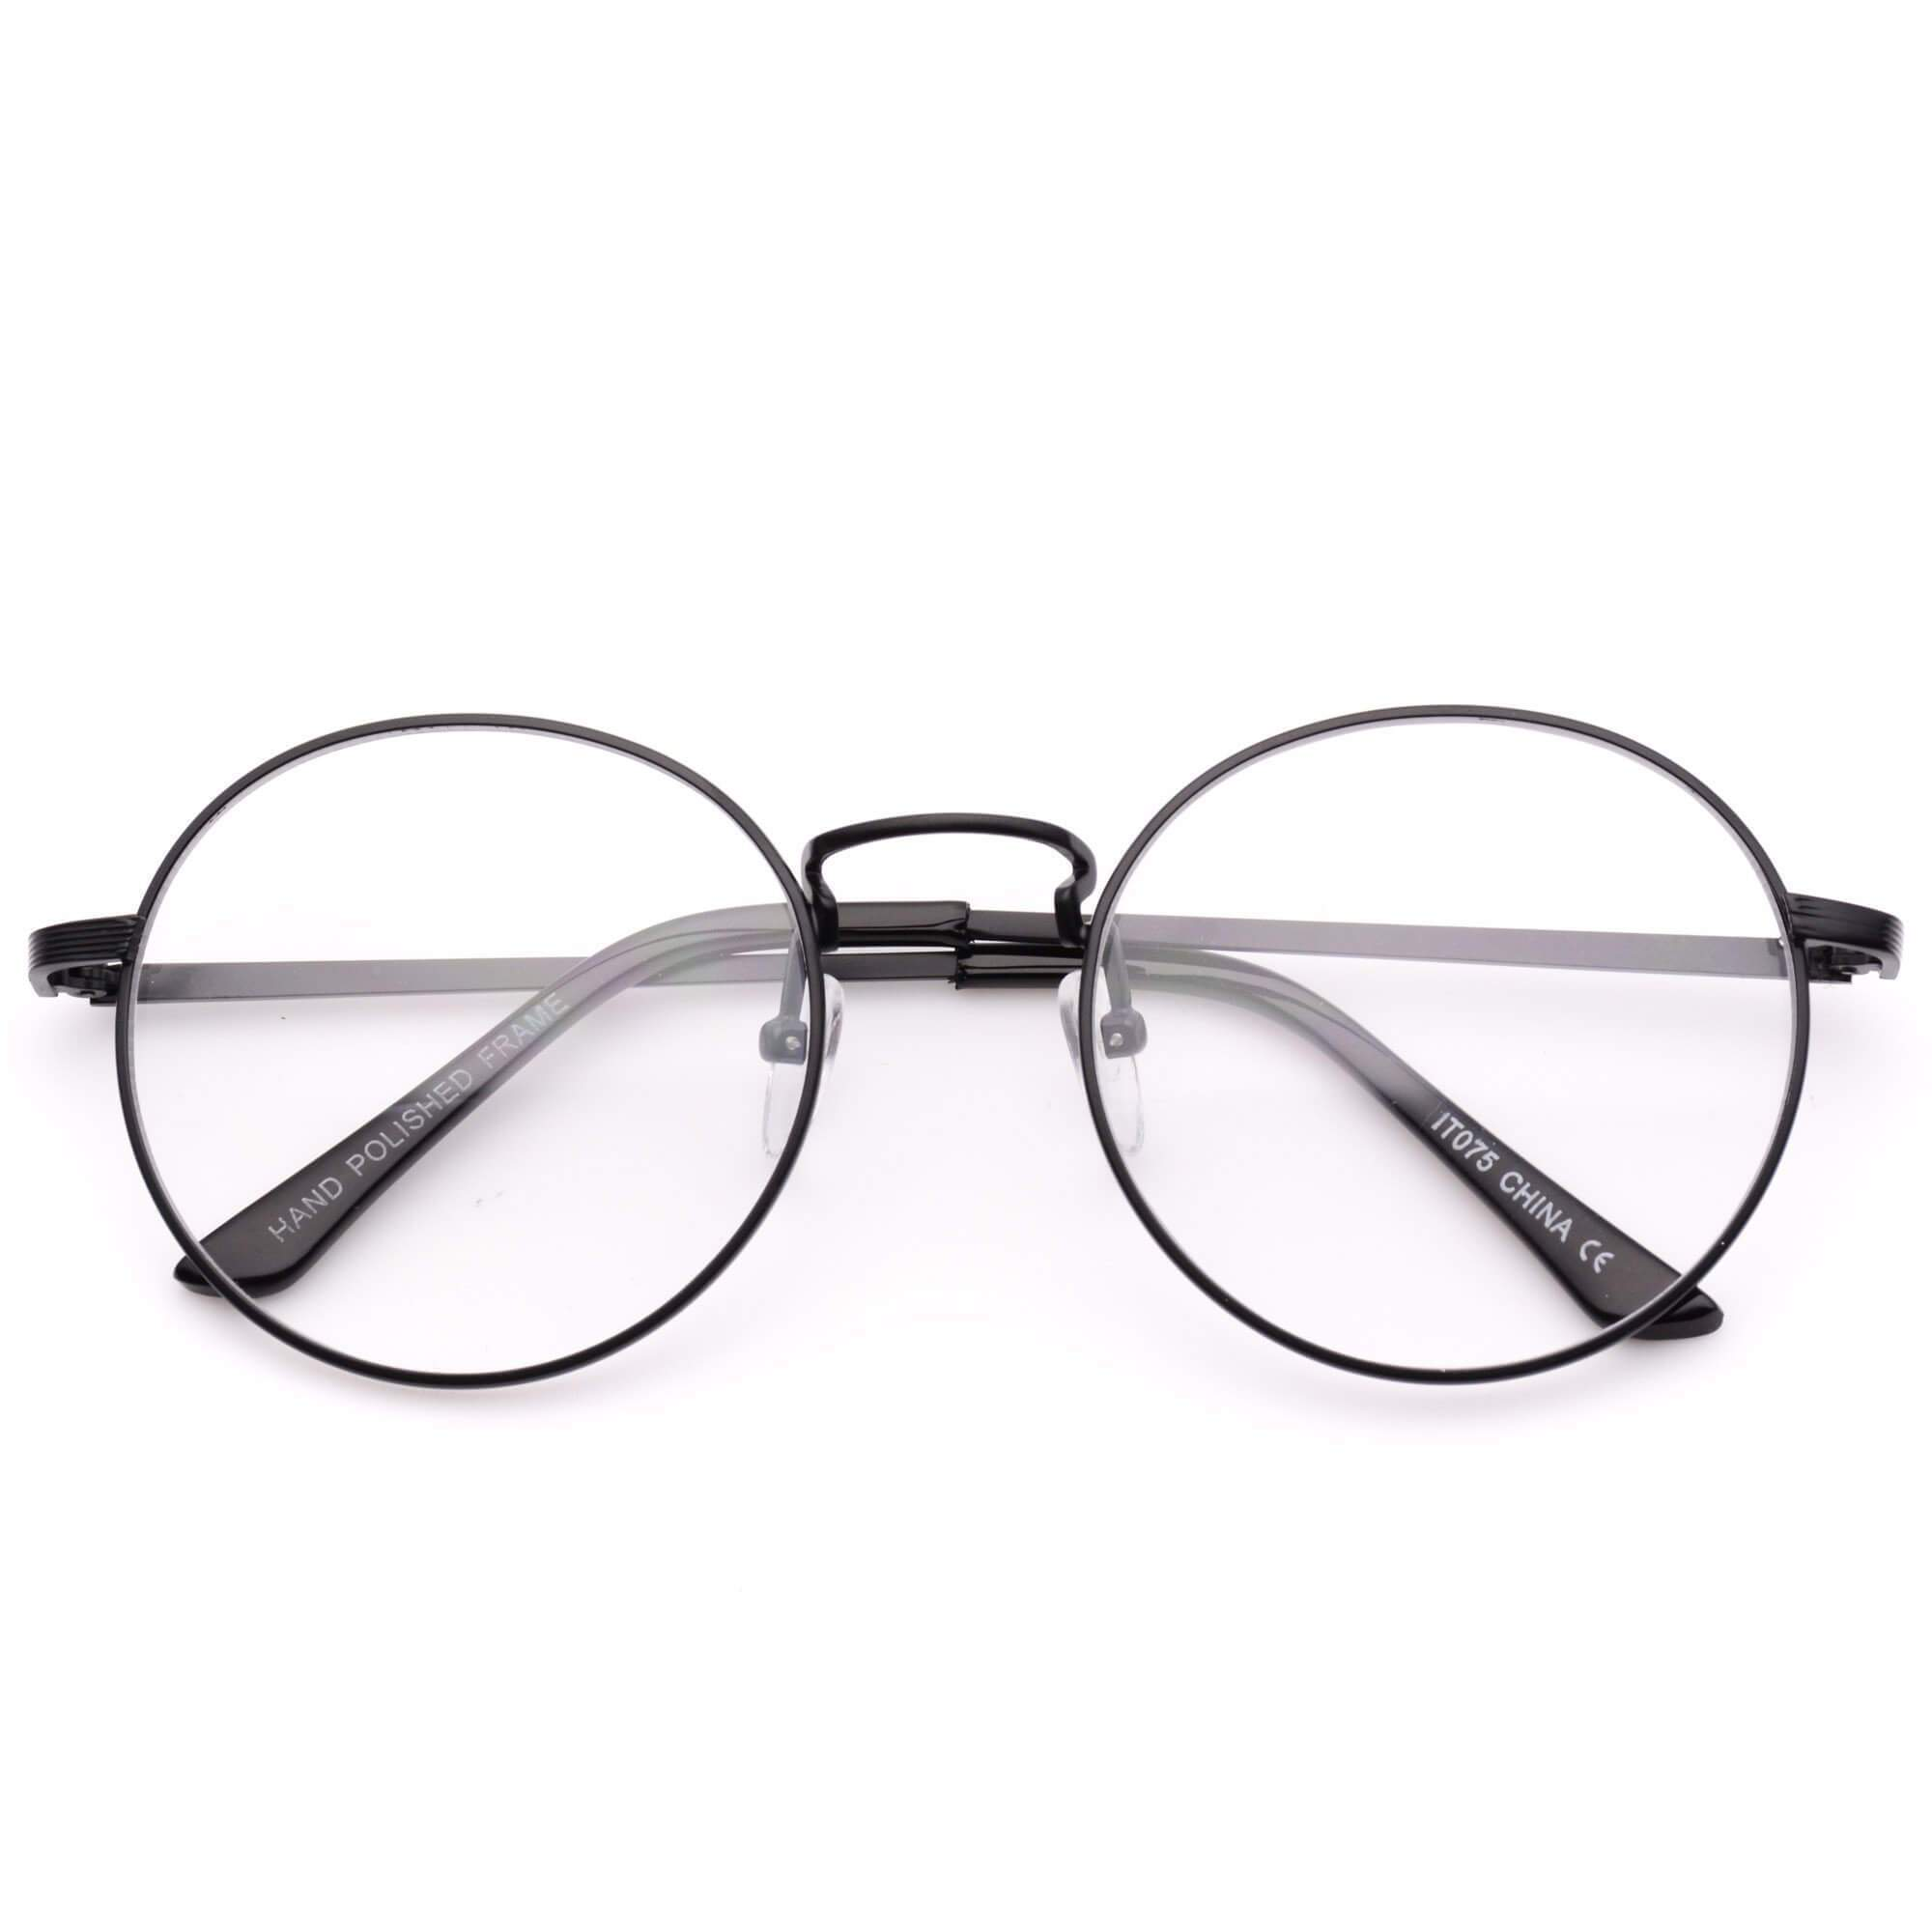 1cb64ab05ba7c Blaine Round Metal Clear Lens Circle Glasses   Accessory bag in 2019 ...